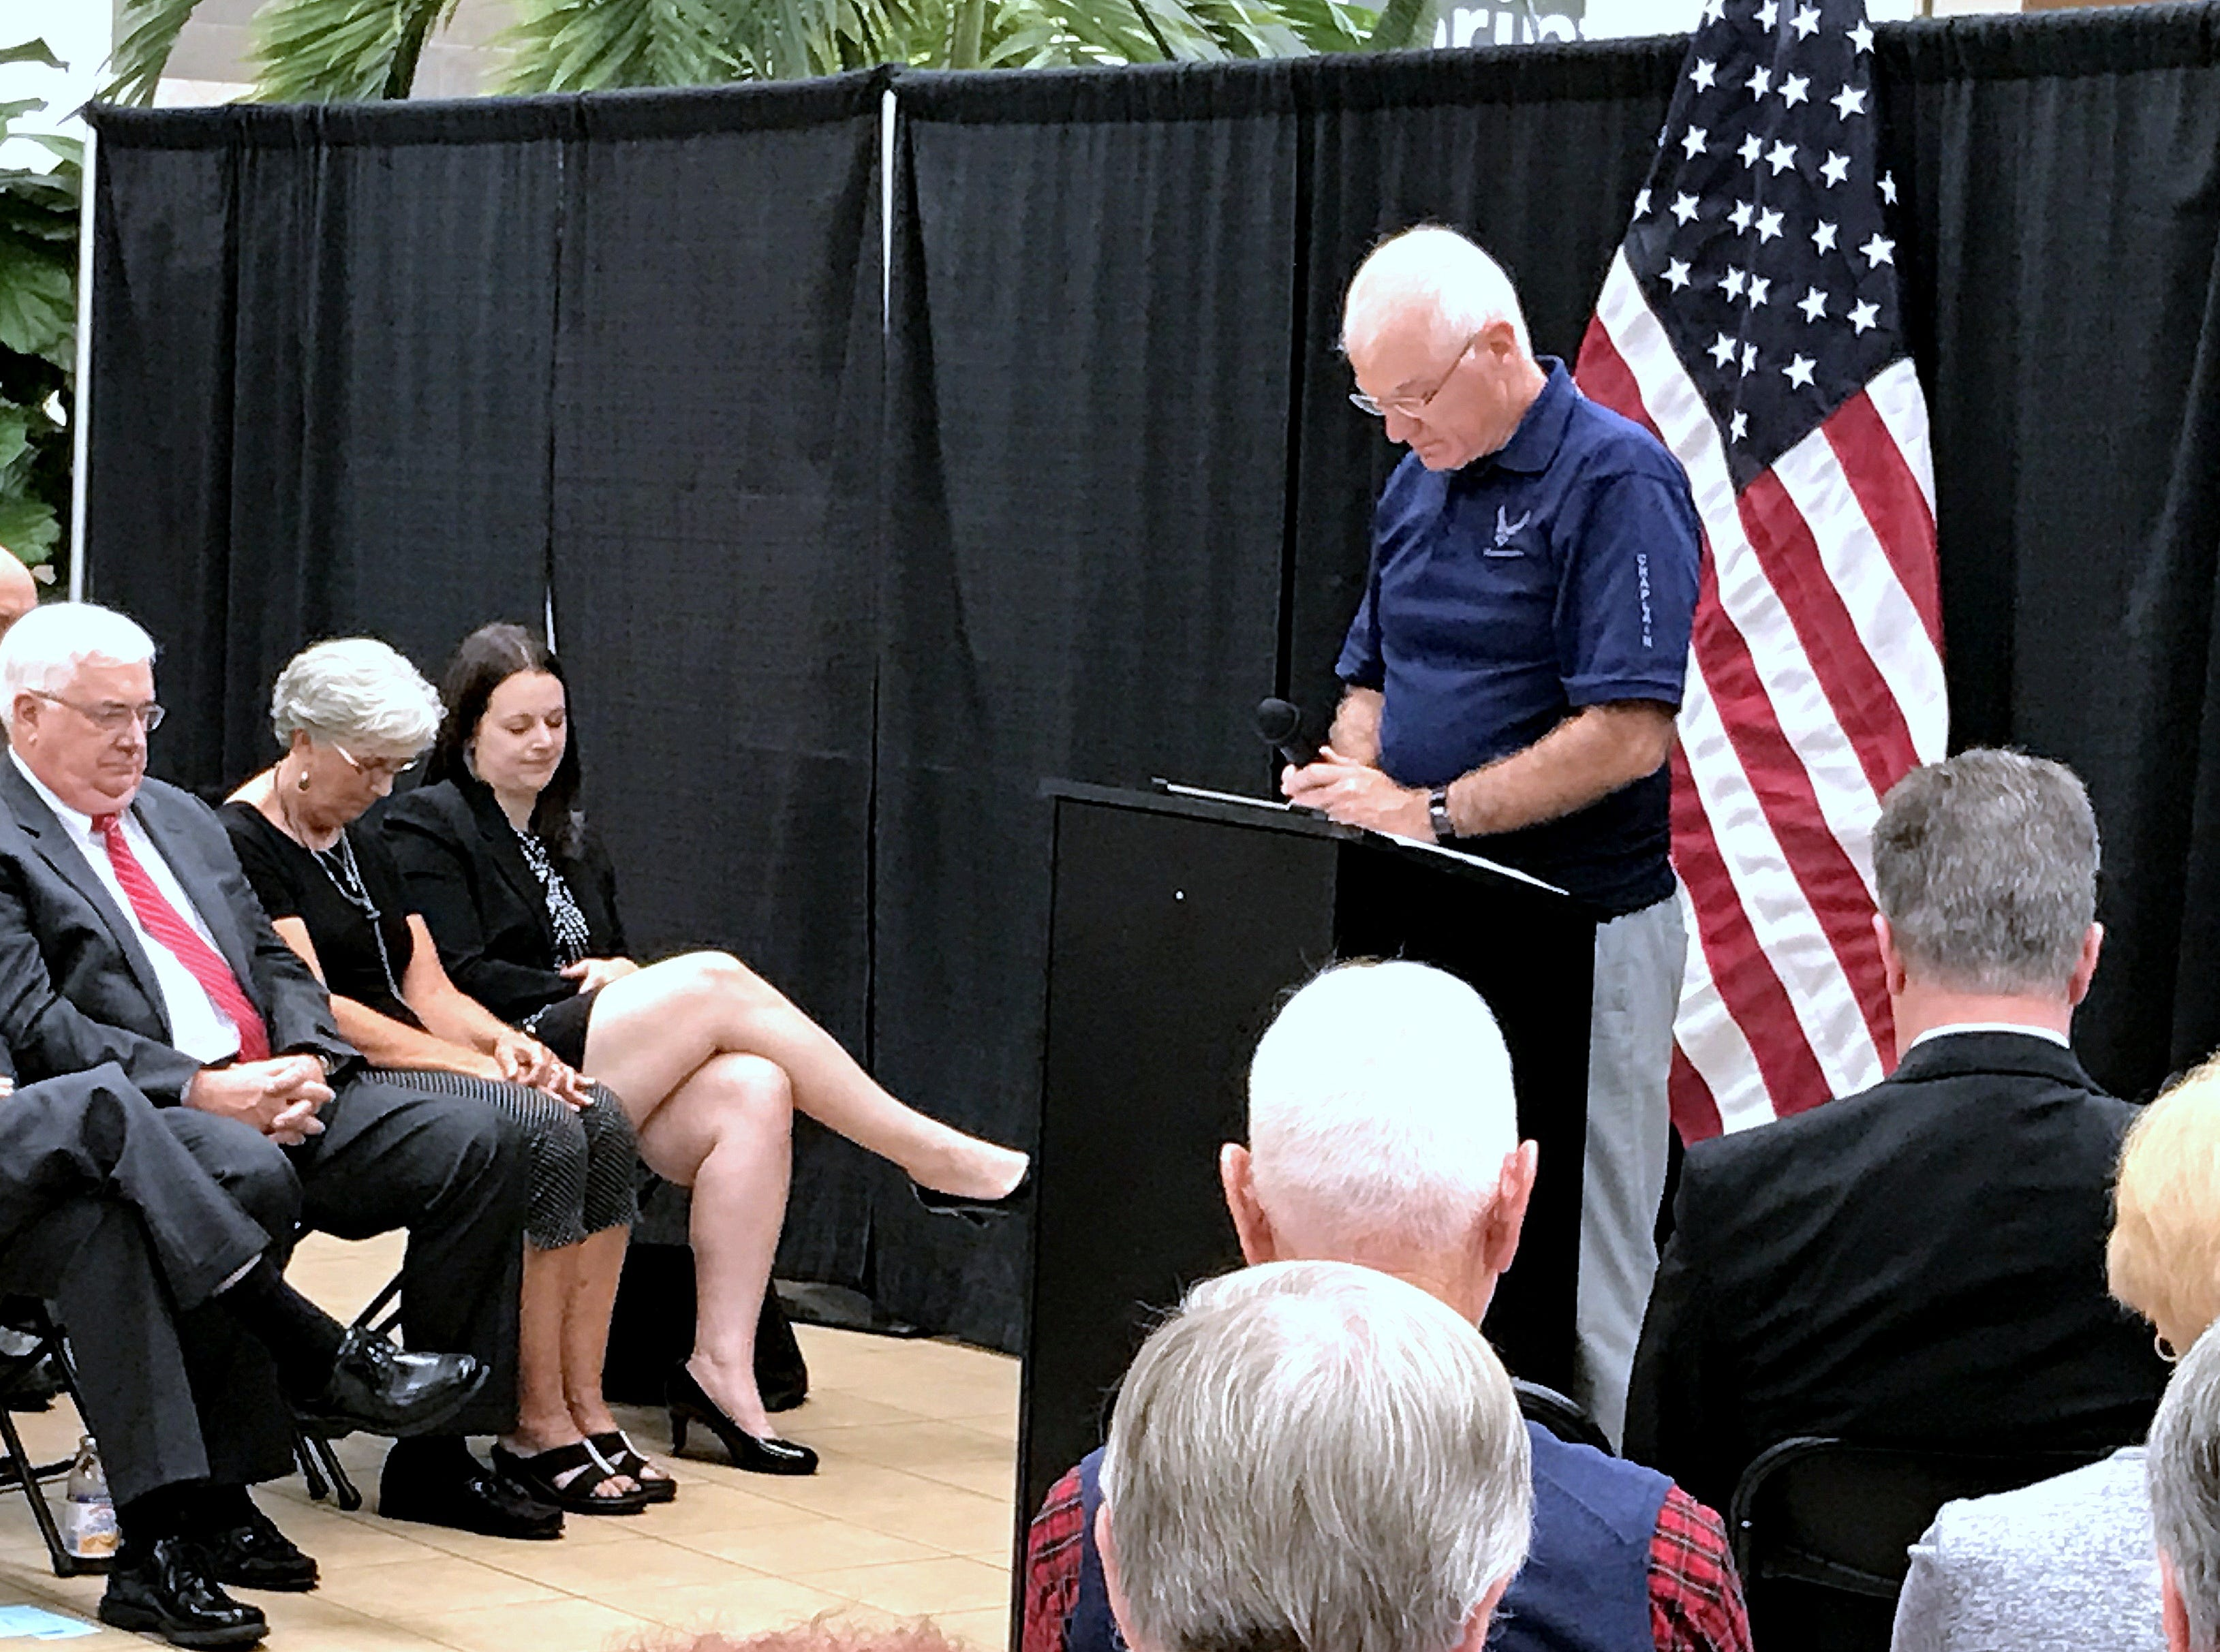 Nationally-syndicated spirituality columnist Norris Burkes leads a moment of prayer Tuesday during a Sept. 11 remembrance at the Arnot Mall in Big Flats.